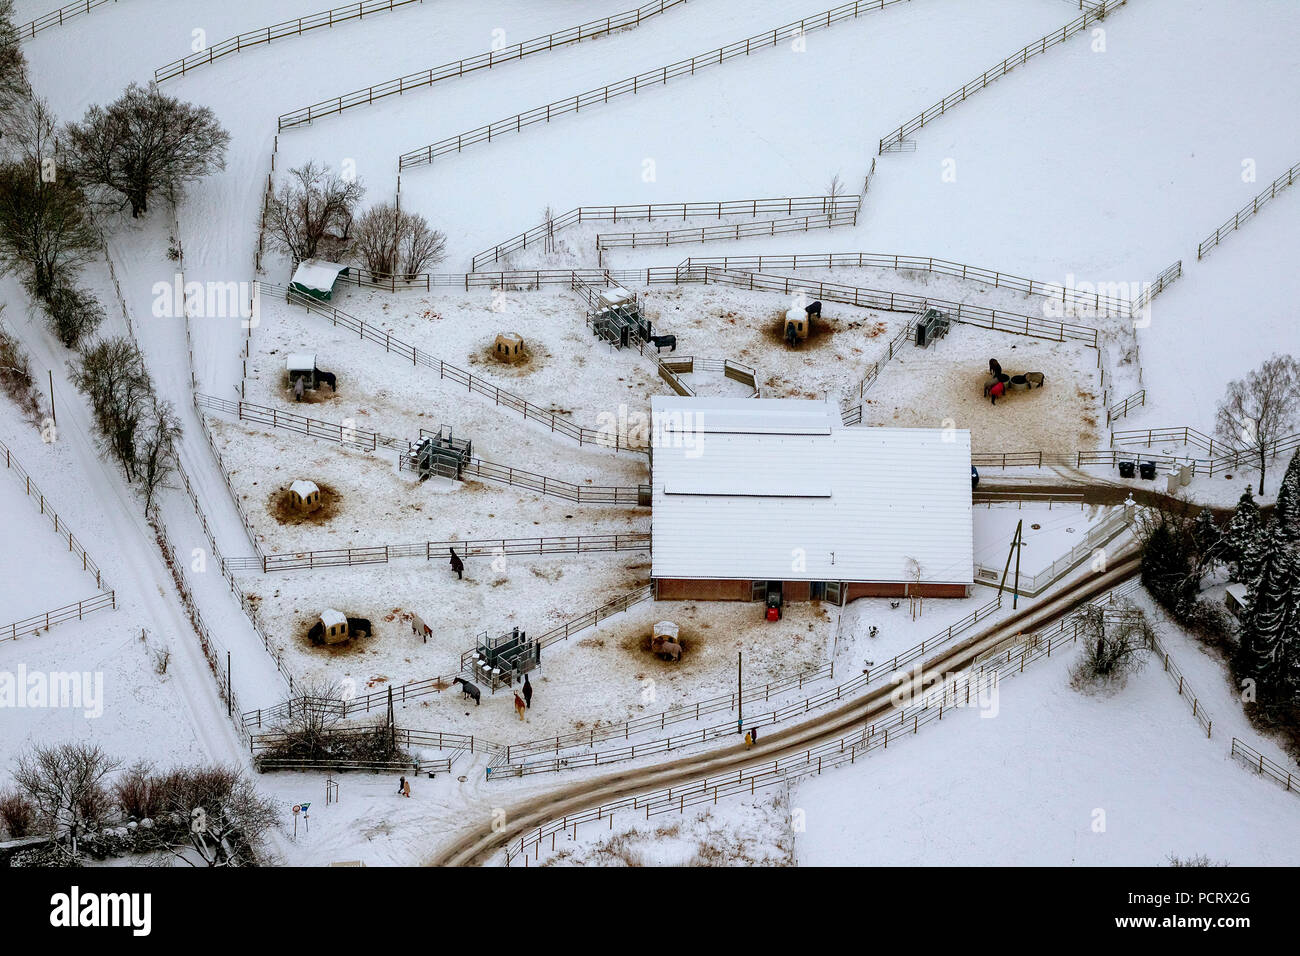 Aerial view, Horses in the snow, stables Hufotel GmbH, Essen, Ruhr area, North Rhine-Westphalia, Germany, Europe - Stock Image